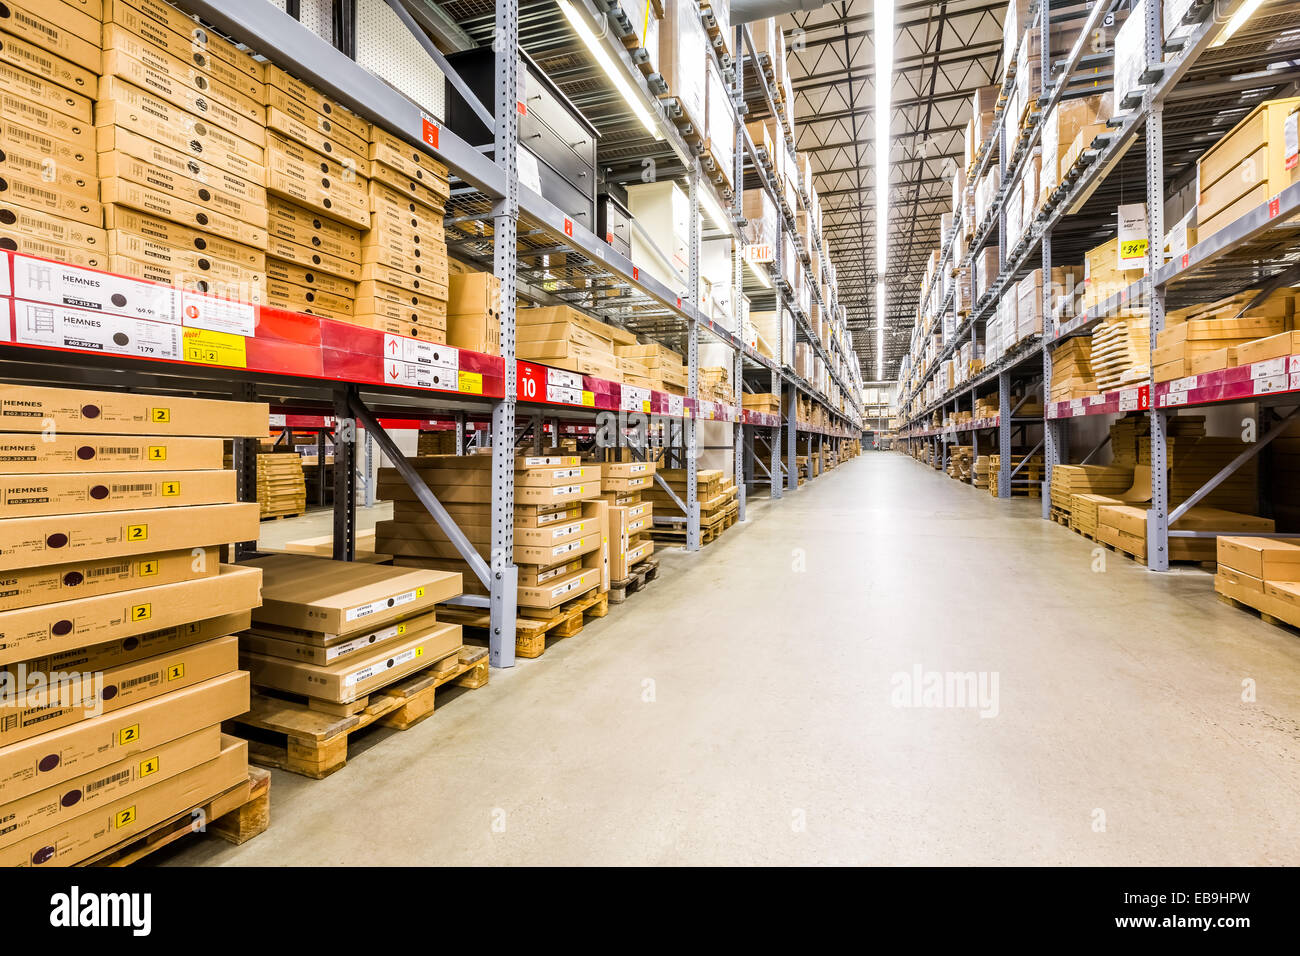 Warehouse aisle in an IKEA store - Stock Image